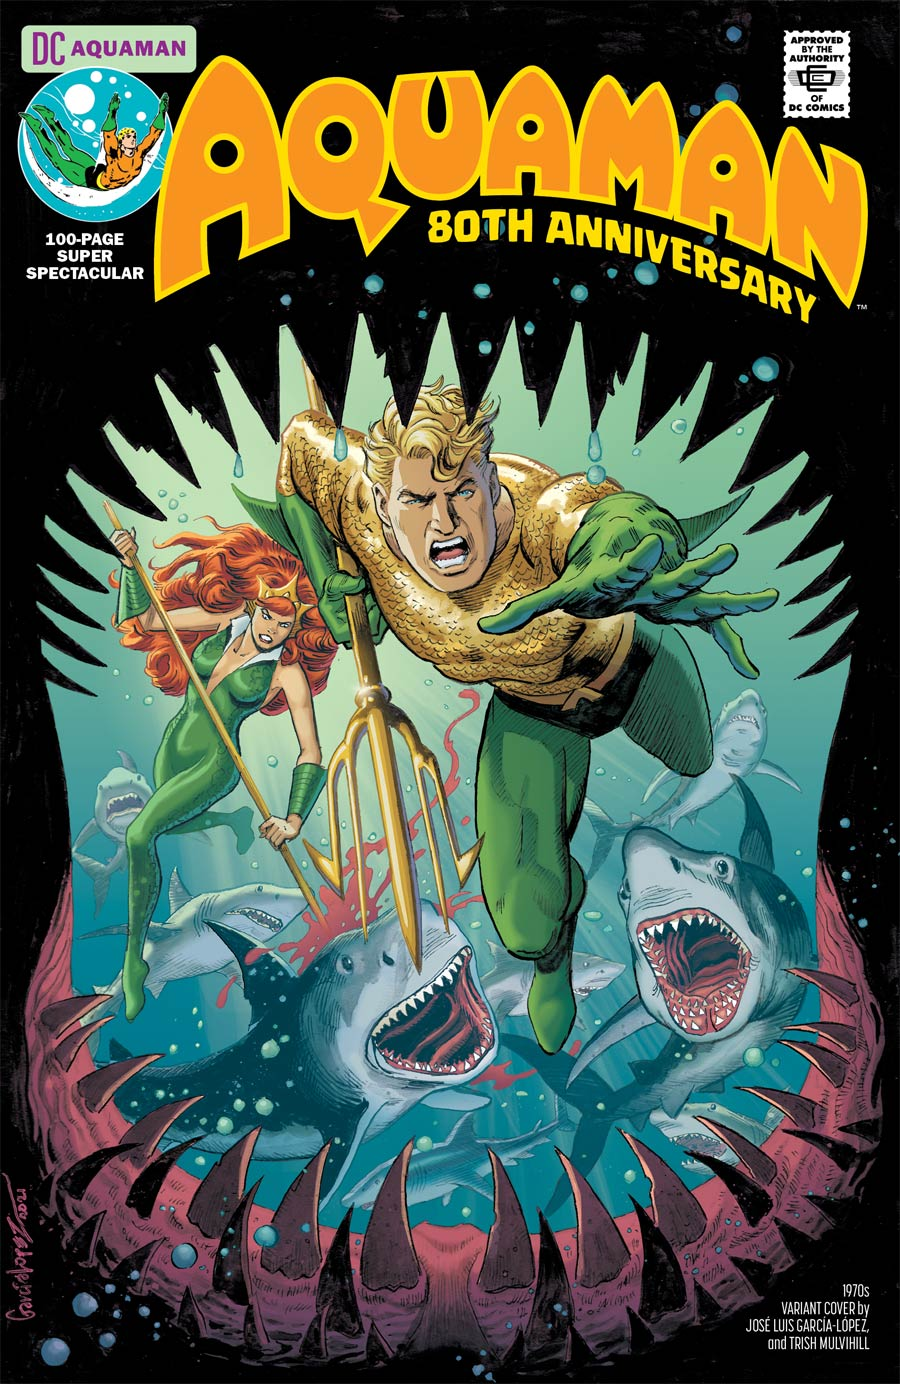 Aquaman-80th-Anniversary-100-Page-Spectacular-1-spoilers-0-5-1950s Aquaman-80th-Anniversary-100-Page-Spectacular-1-spoilers-0-5-1950s